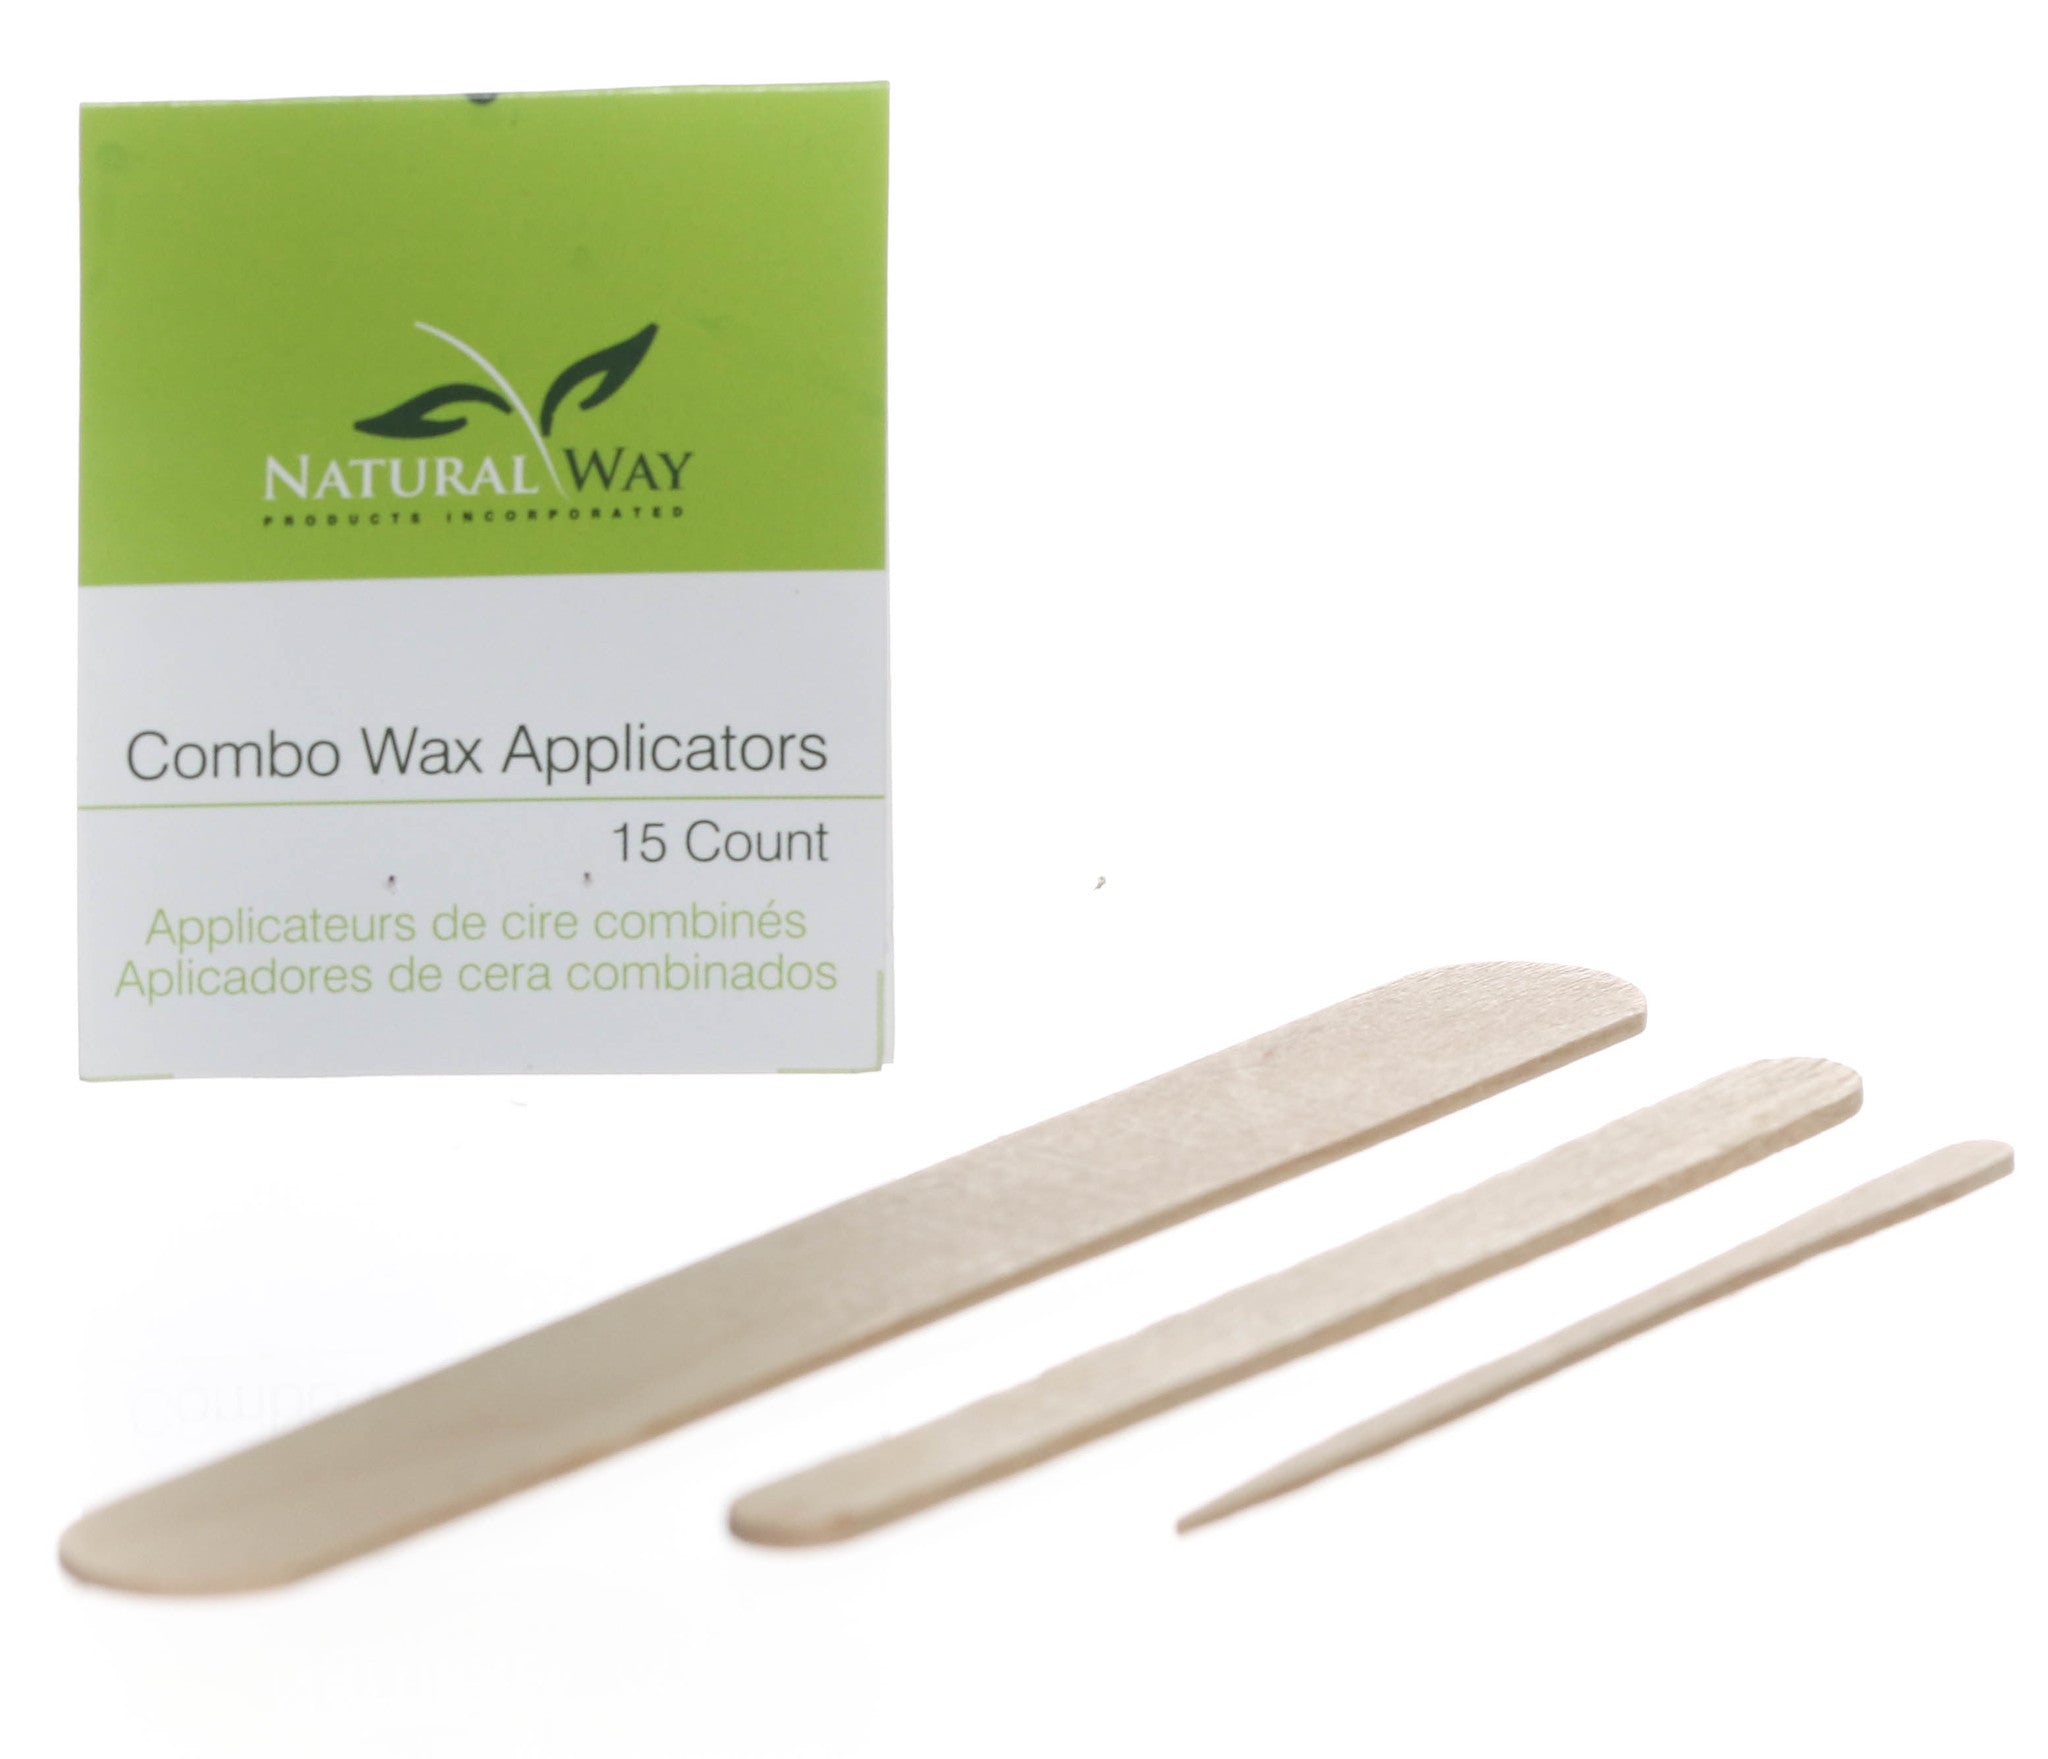 Applicators (5 Eyebrow, 5 Facial, 5 Body)